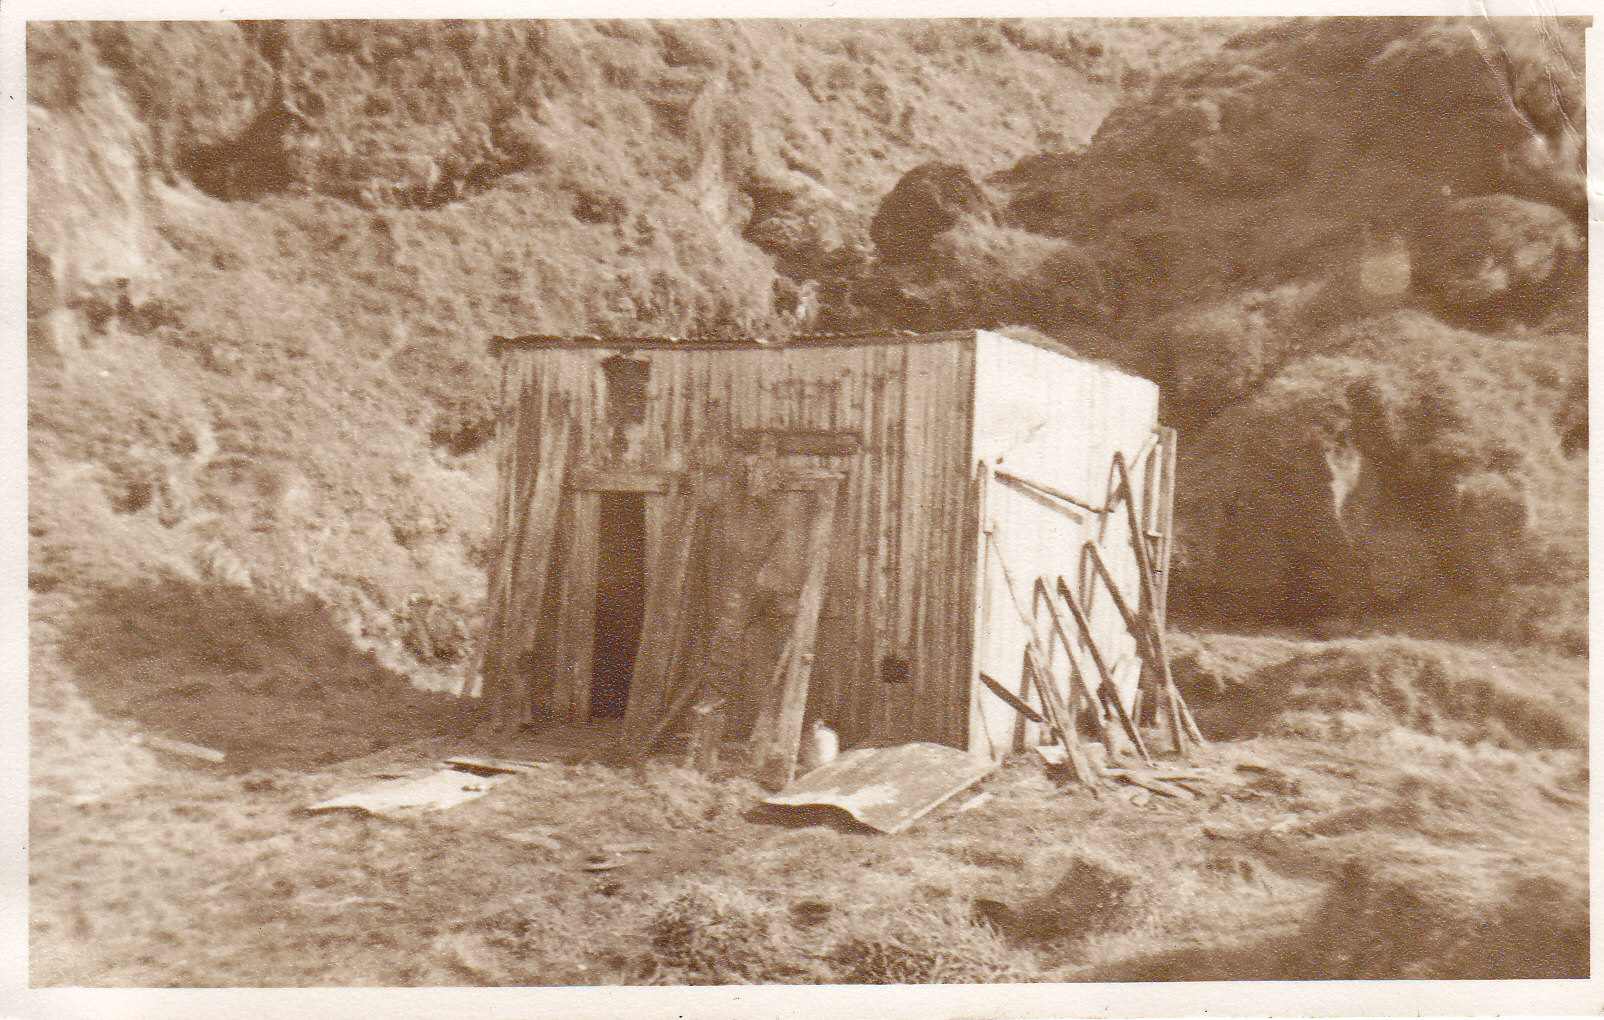 The very first huts - remains from the sealing days 1950's